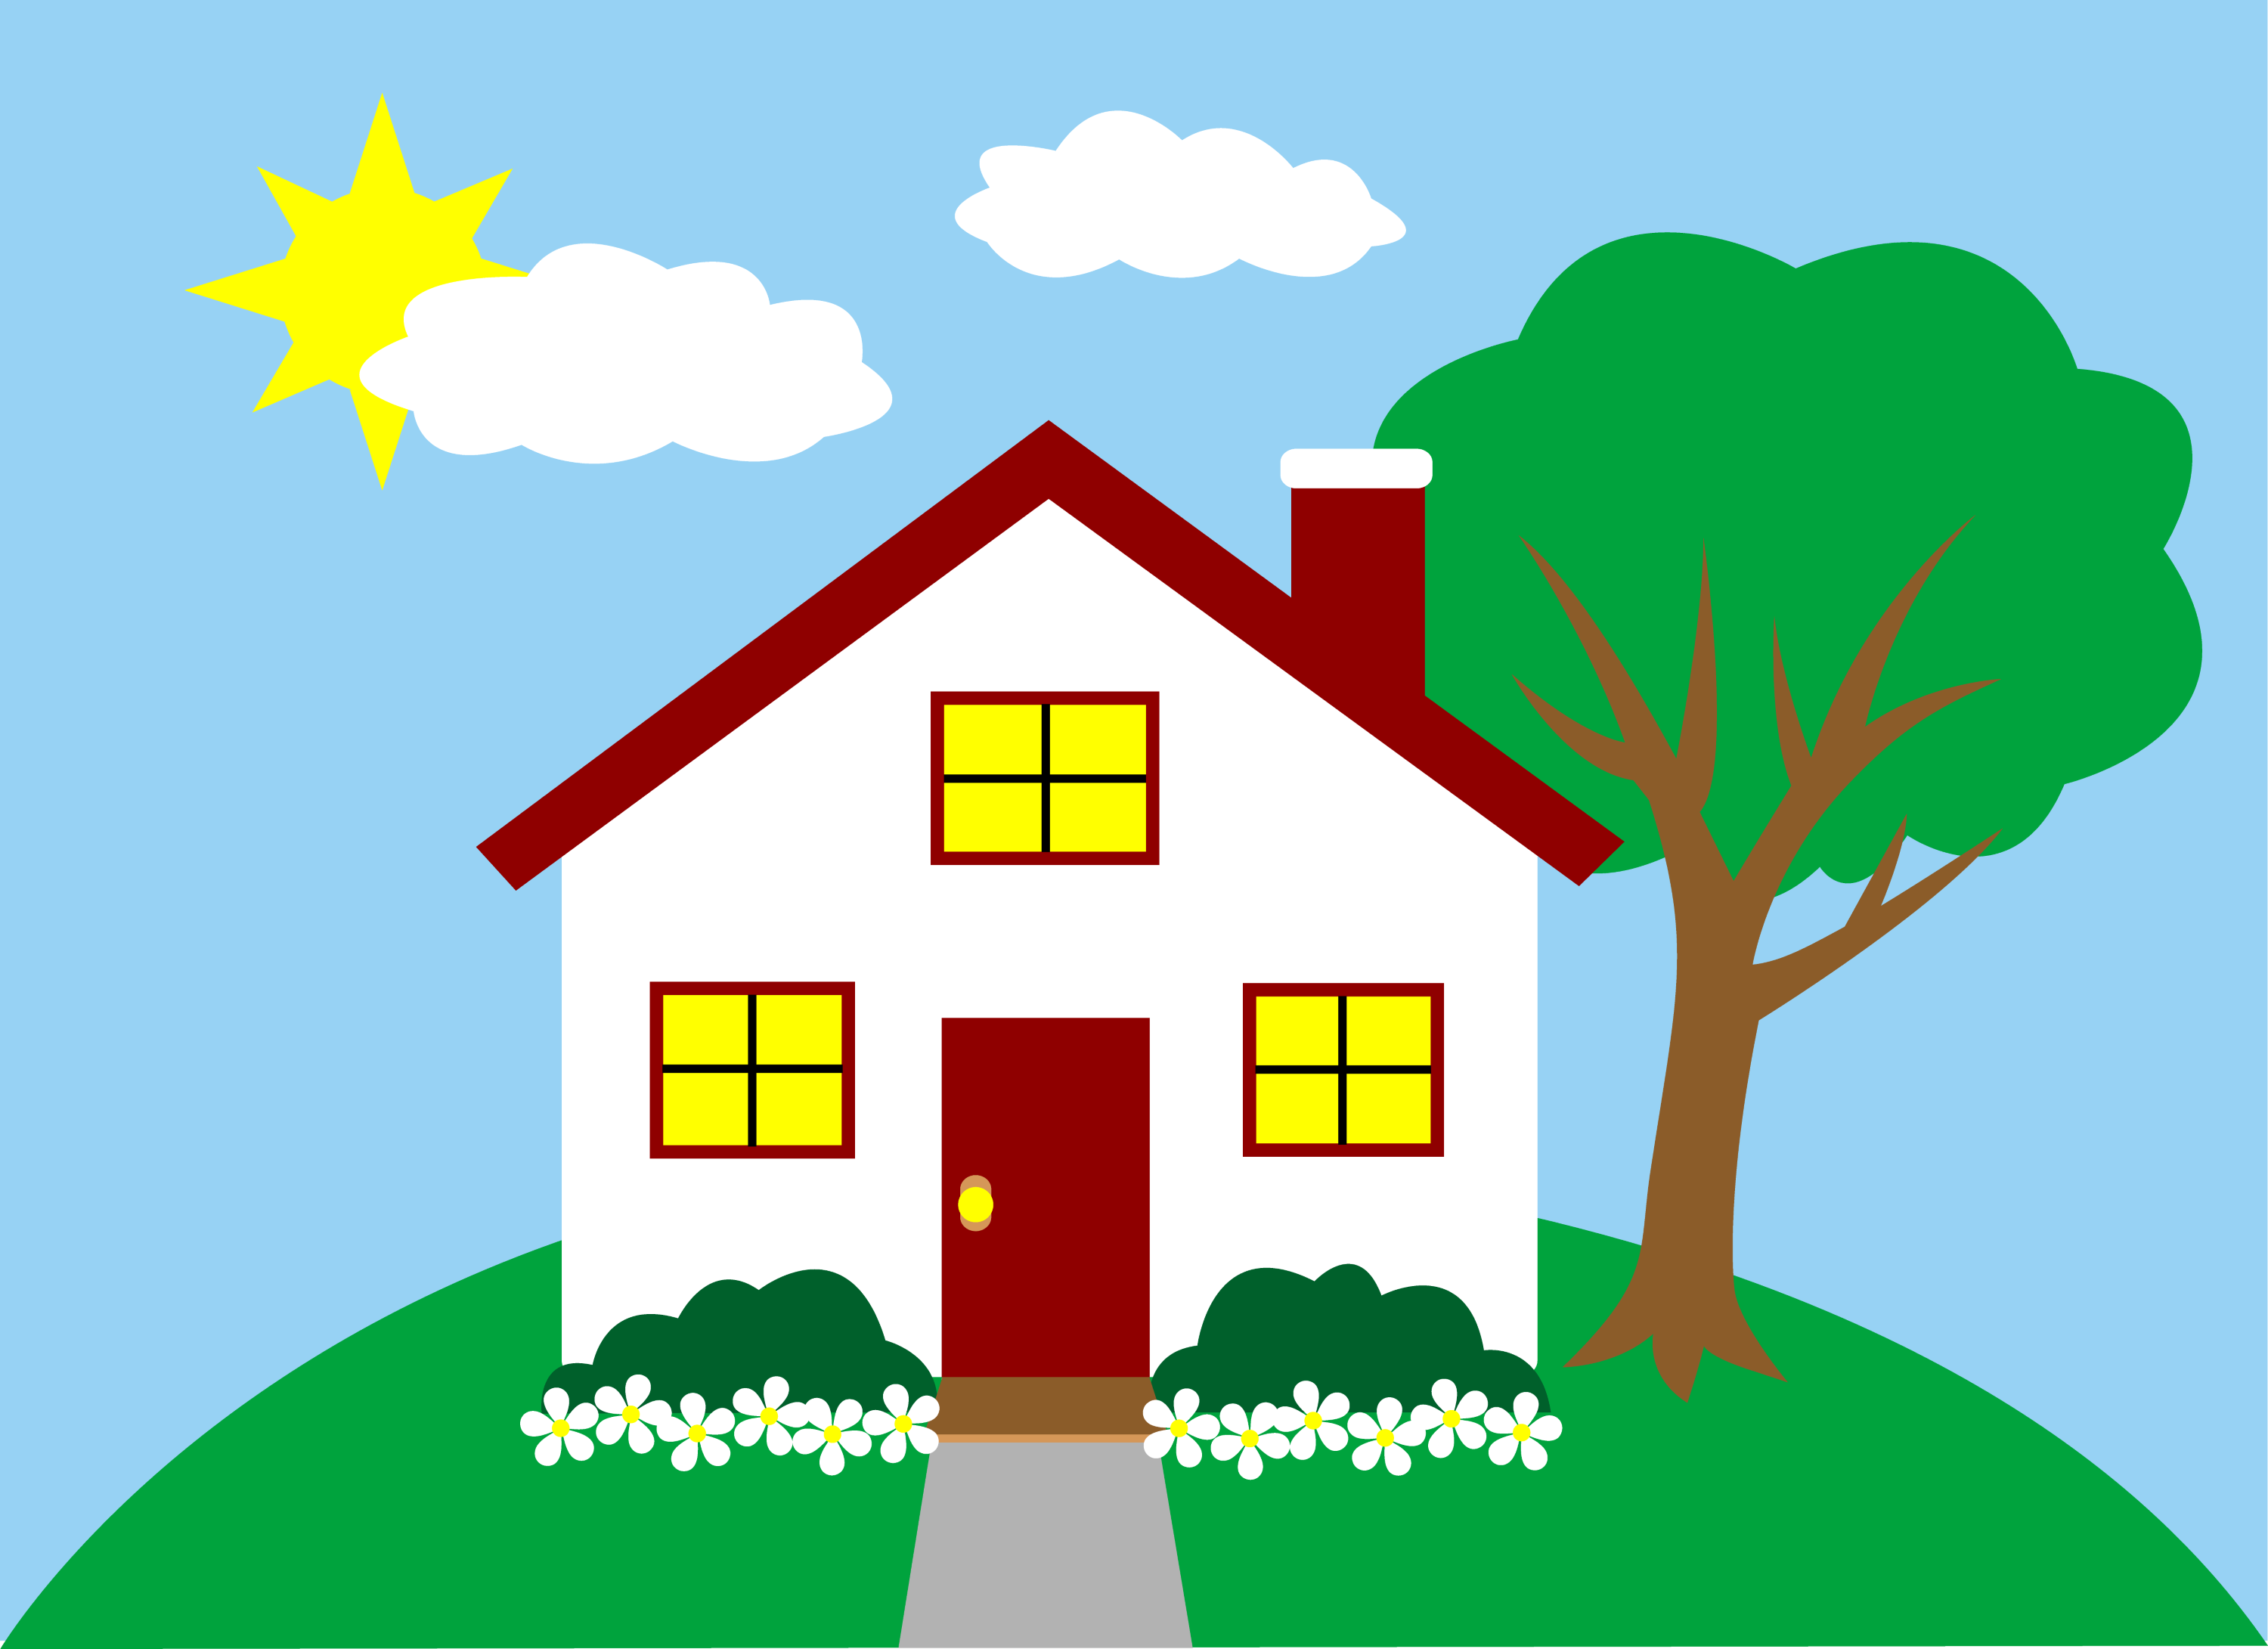 Quaint Little House on a Hill - Free Clip Art